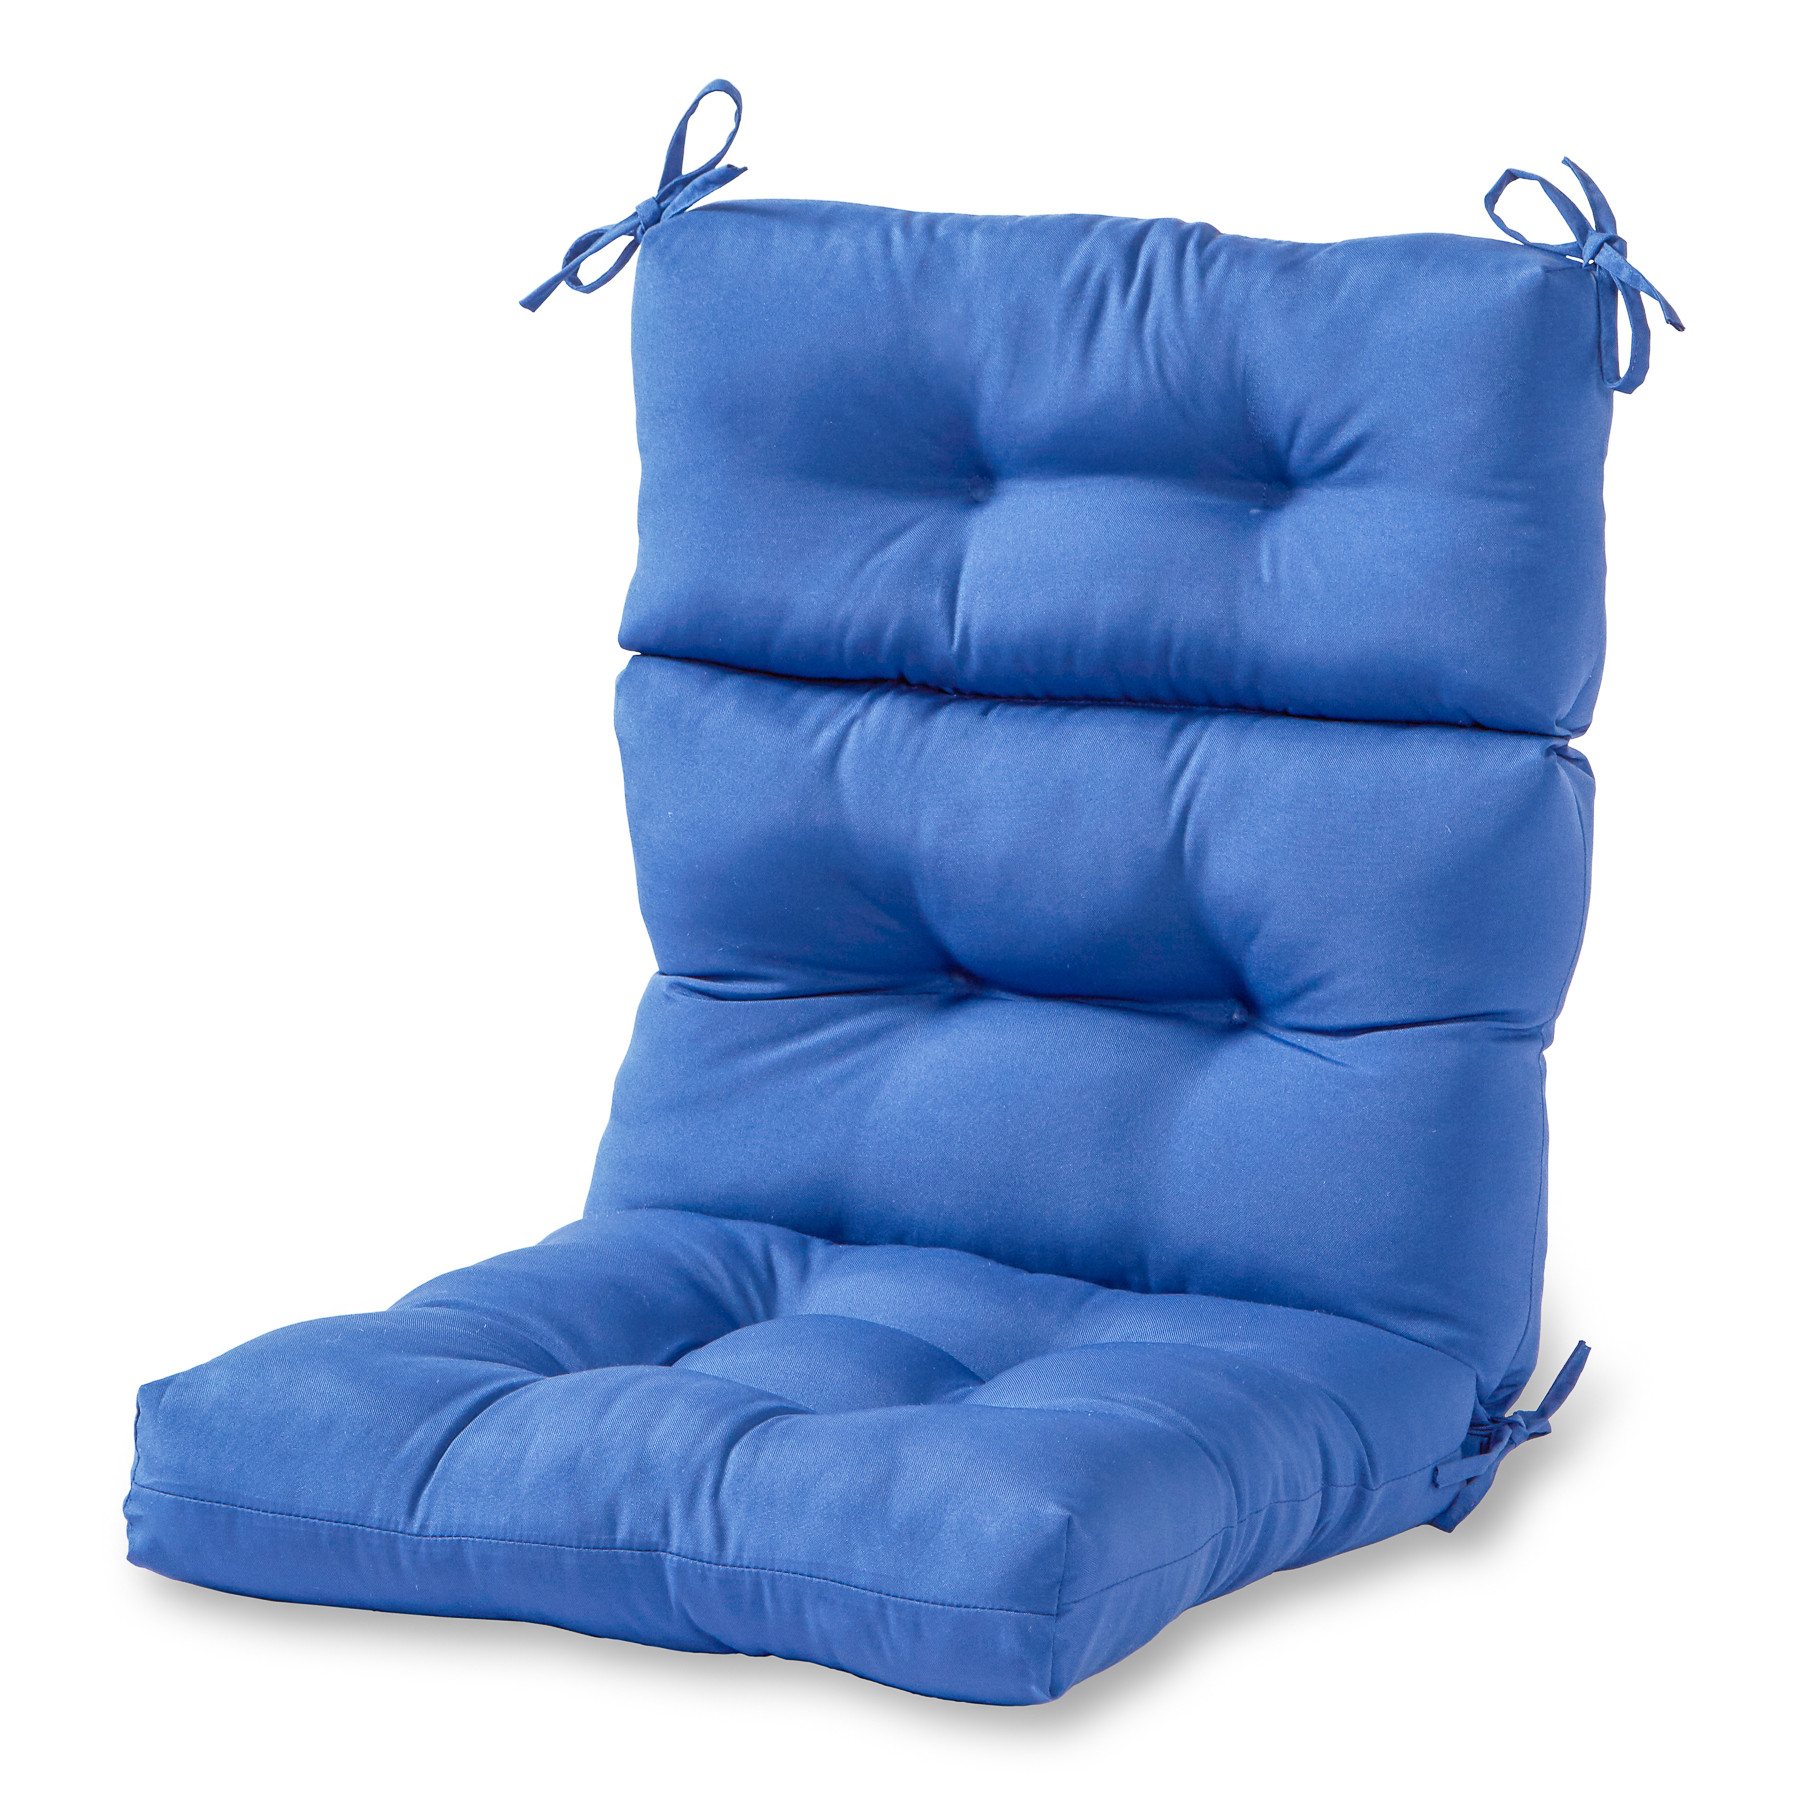 Best ideas about Outdoor Patio Chair Cushions . Save or Pin Greendale Home Fashions Outdoor High Back Chair Cushion Now.